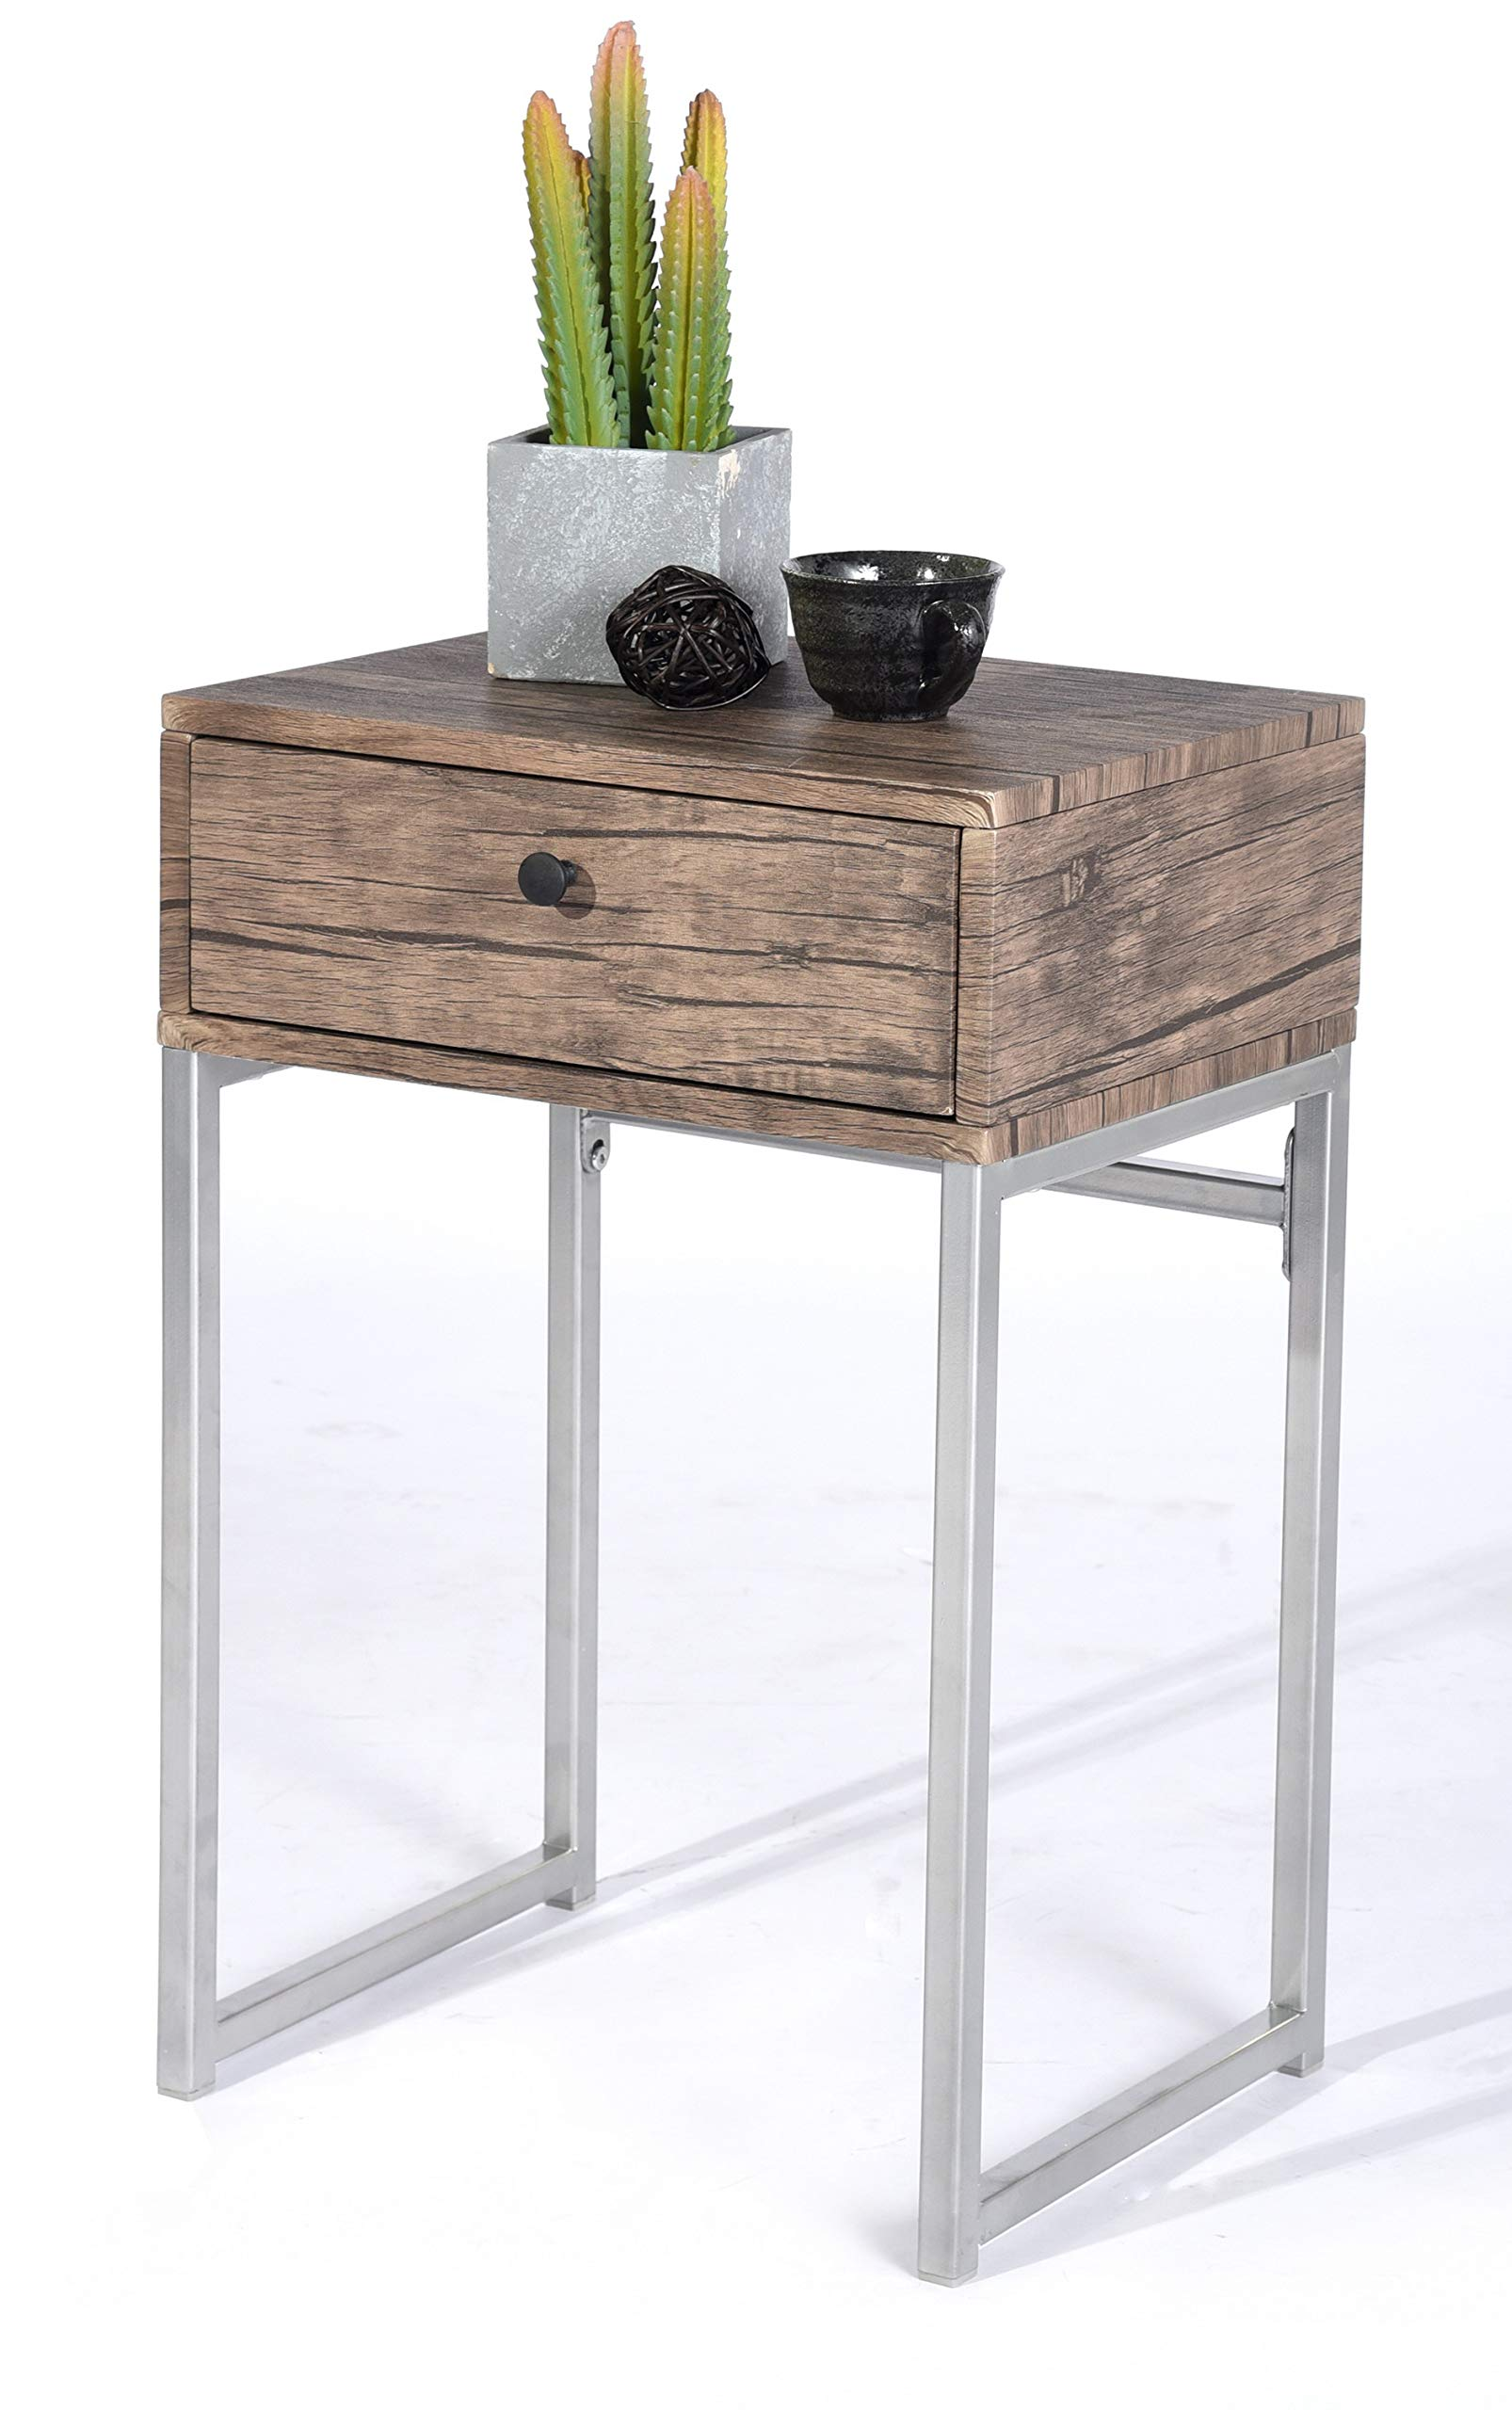 Vintage Dark Brown/Silver Metal Frame Nightstand Side End Table with Drawer - Color: Dark Brown and Silver Material: Metal, MDF/Hardwood Features one drawer for extra storage - nightstands, bedroom-furniture, bedroom - 814a8zFQeYL -